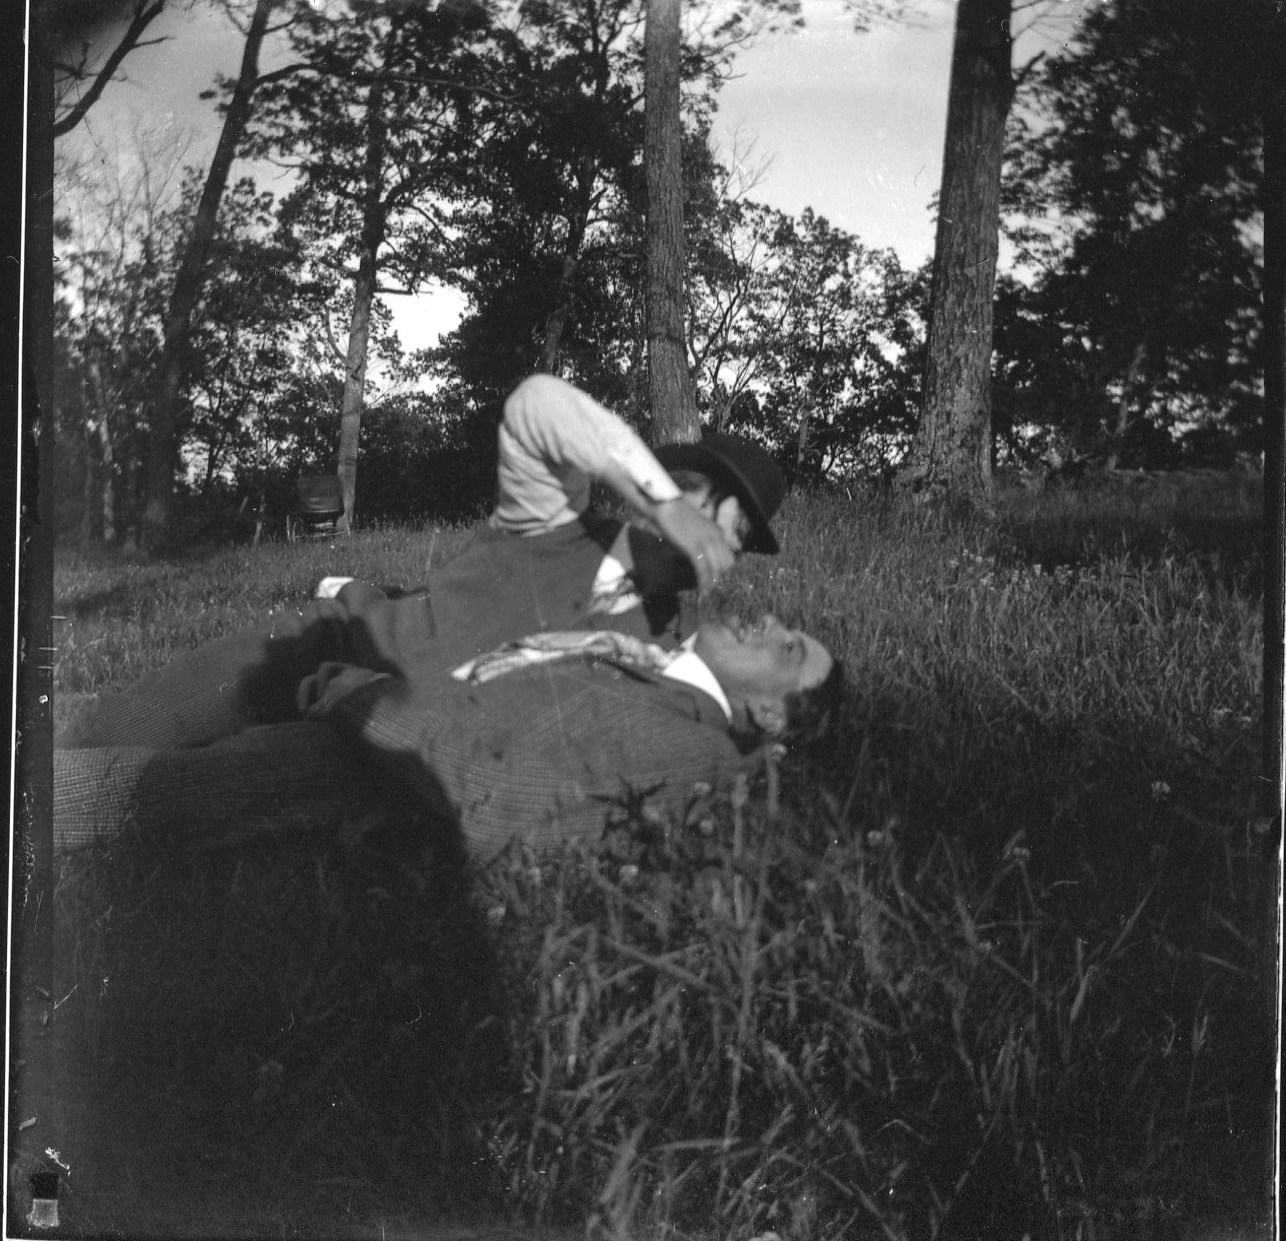 photo of Two Unidentified Men at a Picnic